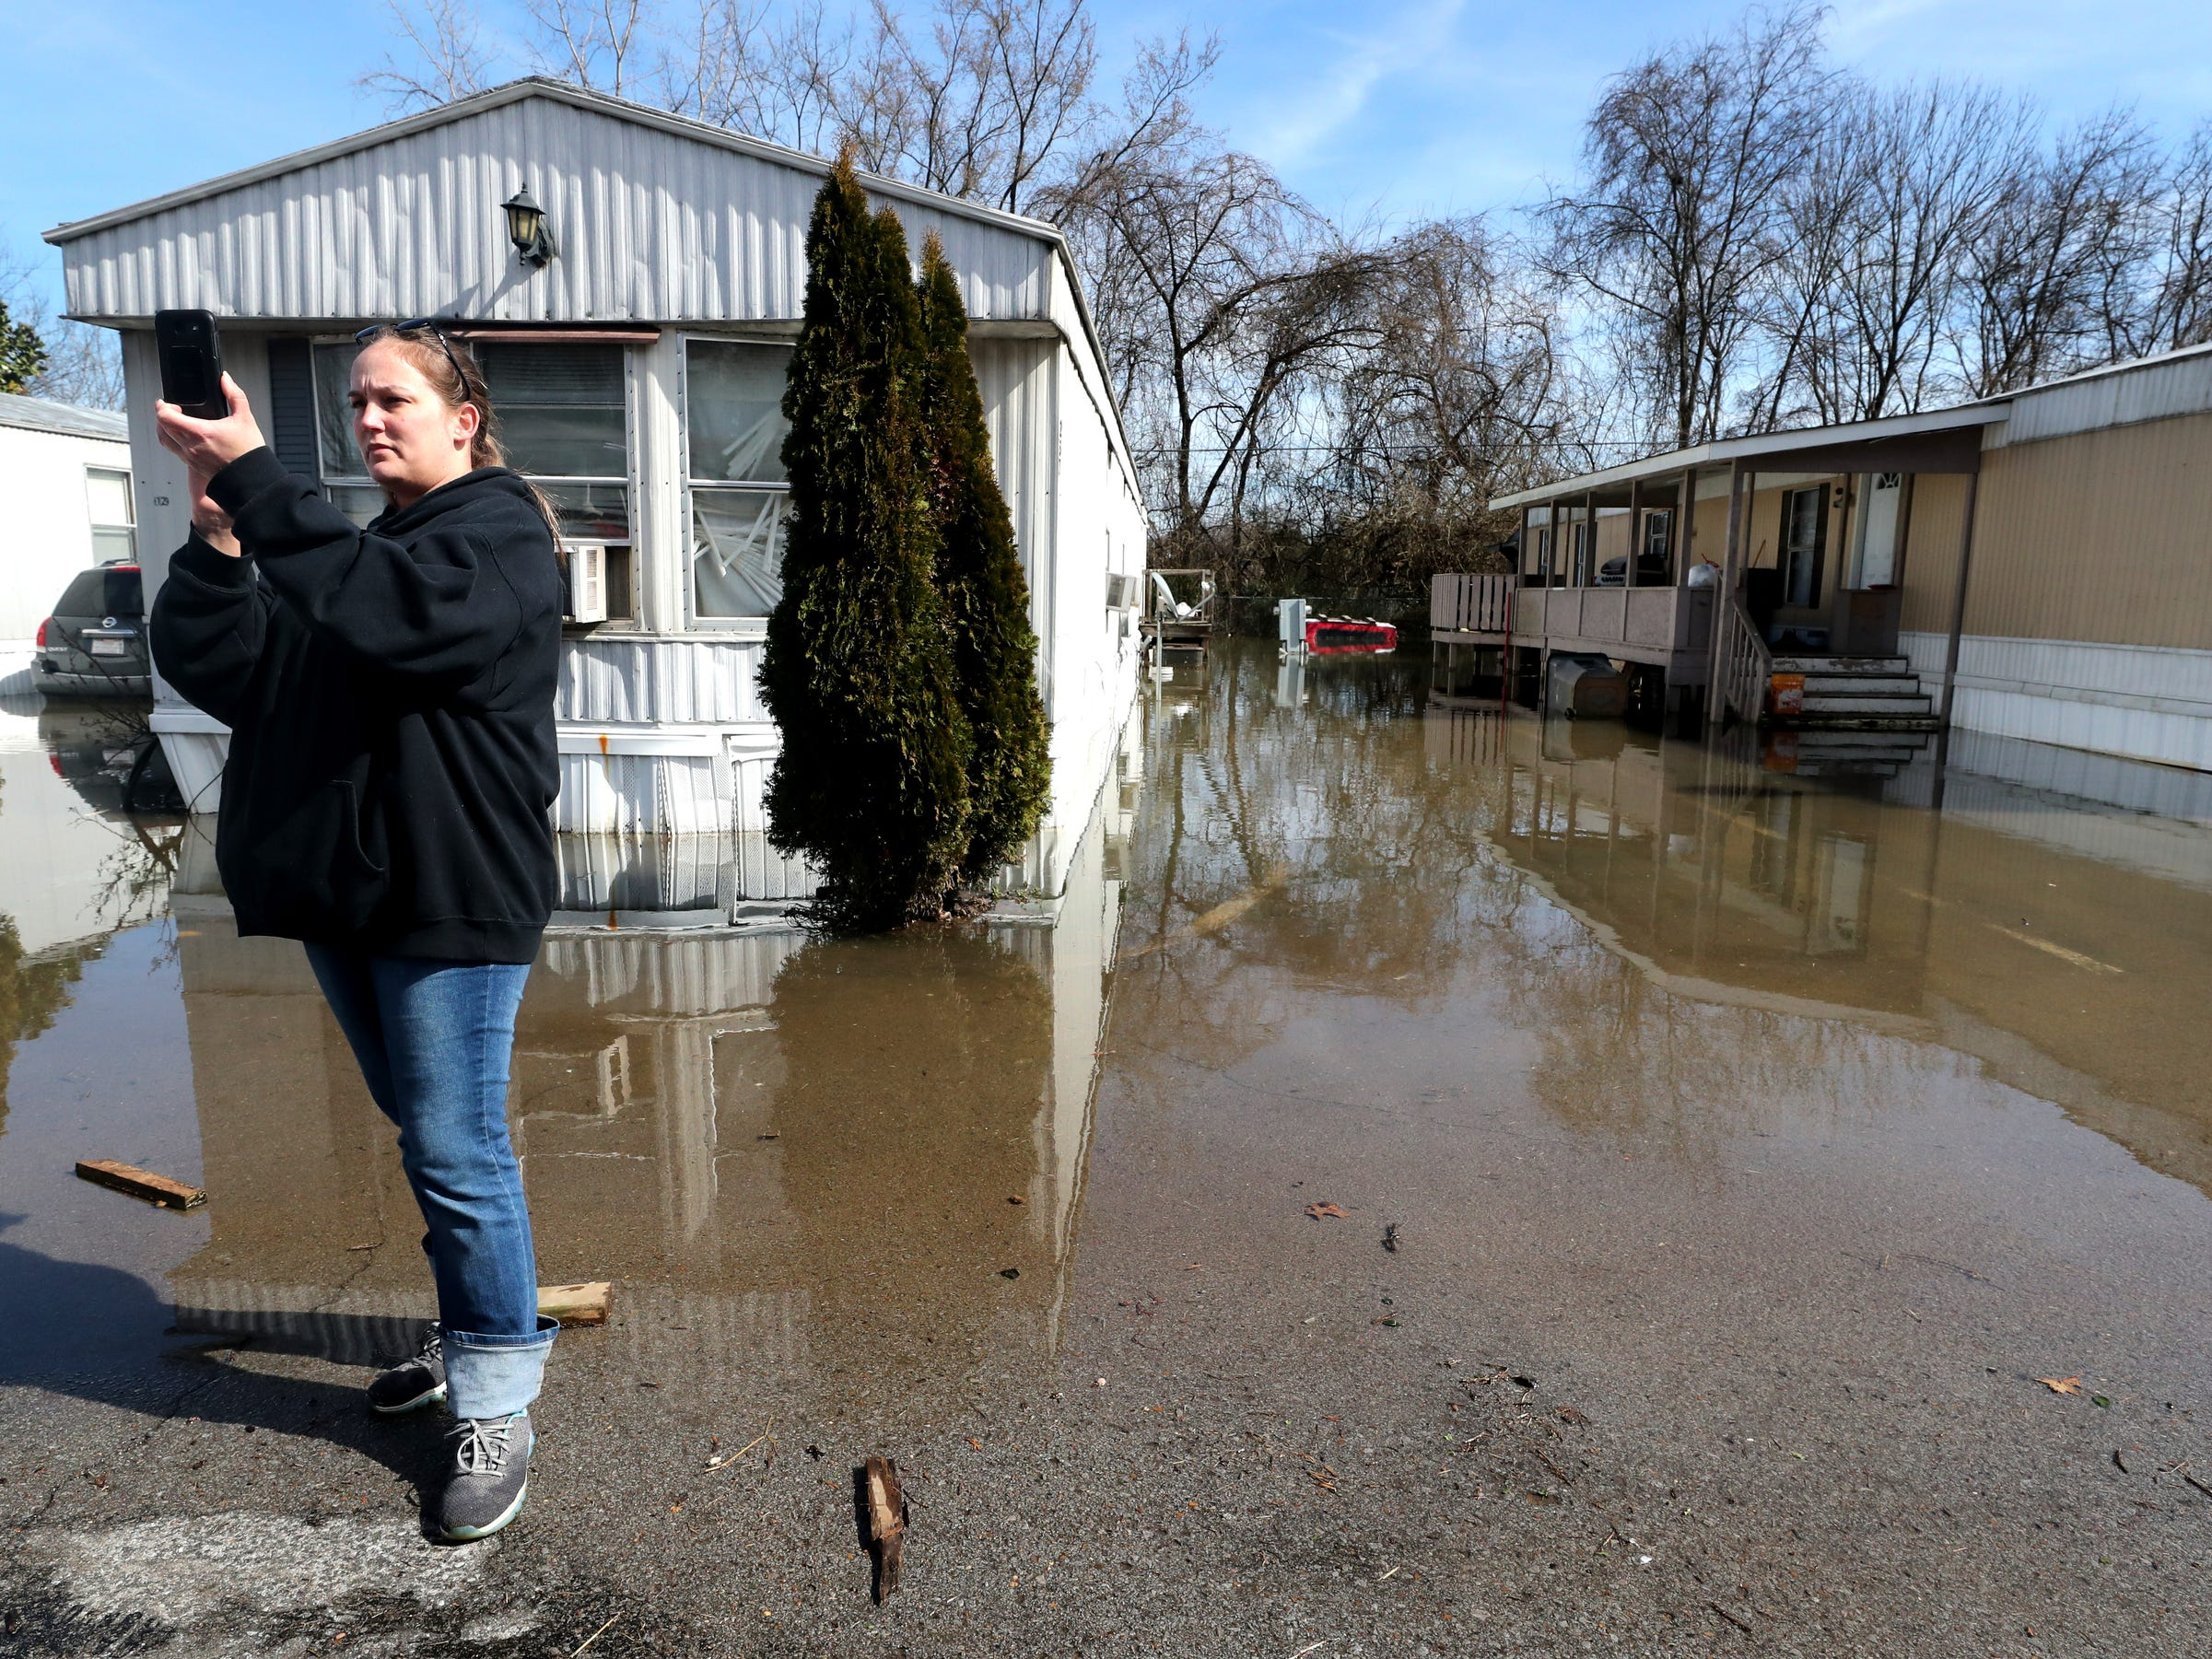 Red Cross Volunteer Wanda Audrey Ford, with the Disaster Action Team, record and document damage to homes in the Maple Manor Community Mobile Home Park, in Smyrna, Tenn., on Monday, Feb. 25, 2019.